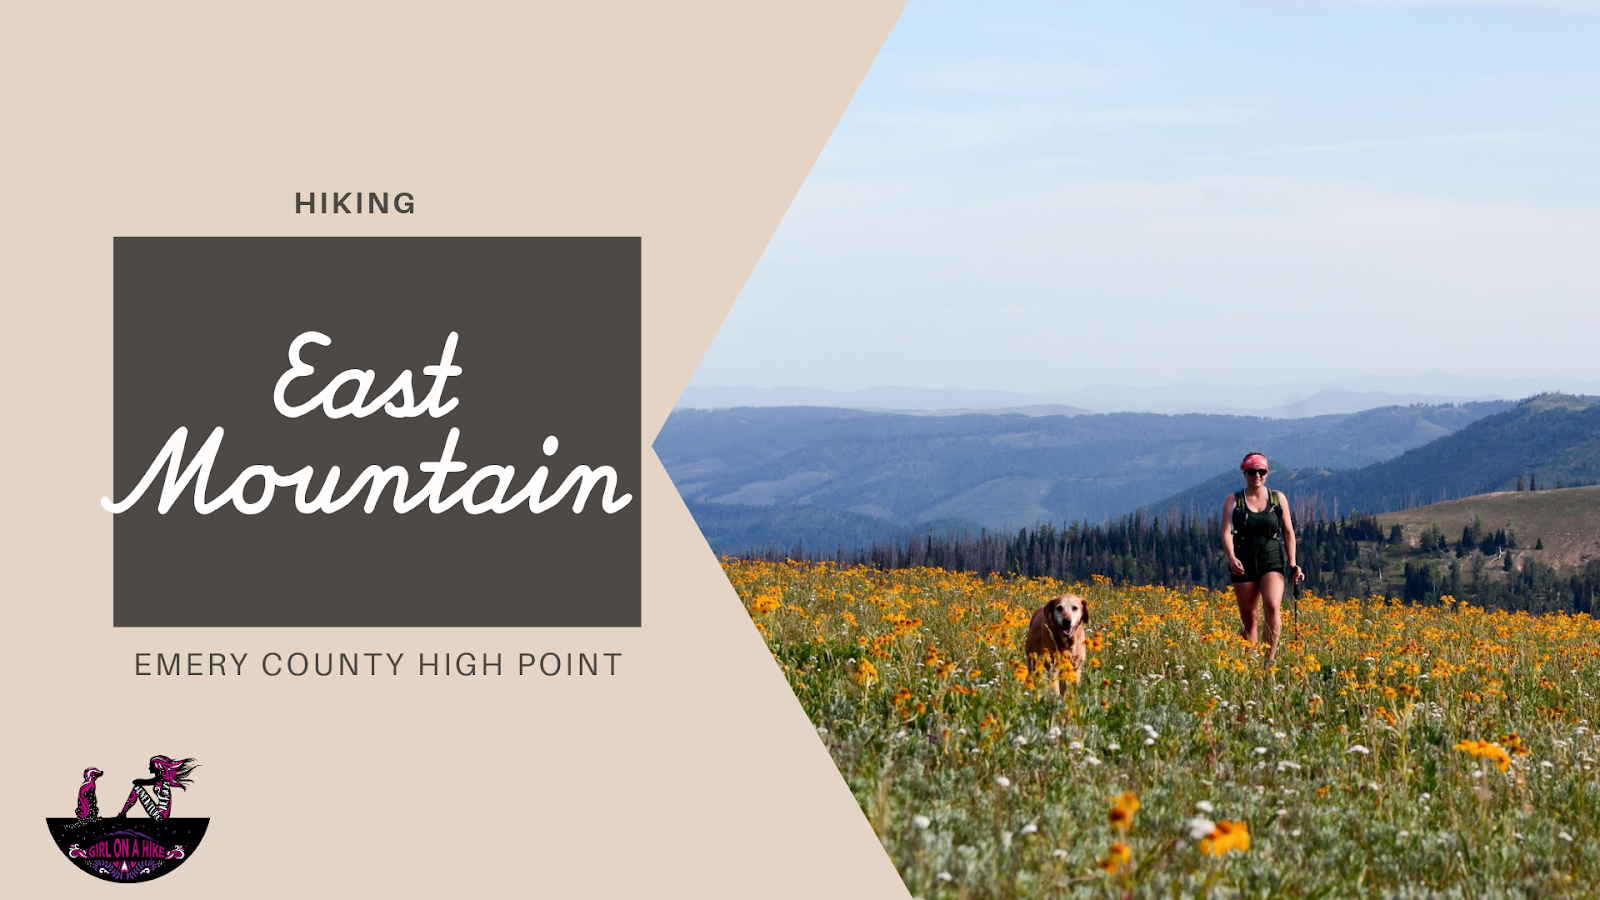 Hiking to East Mountain, Emery County High Point